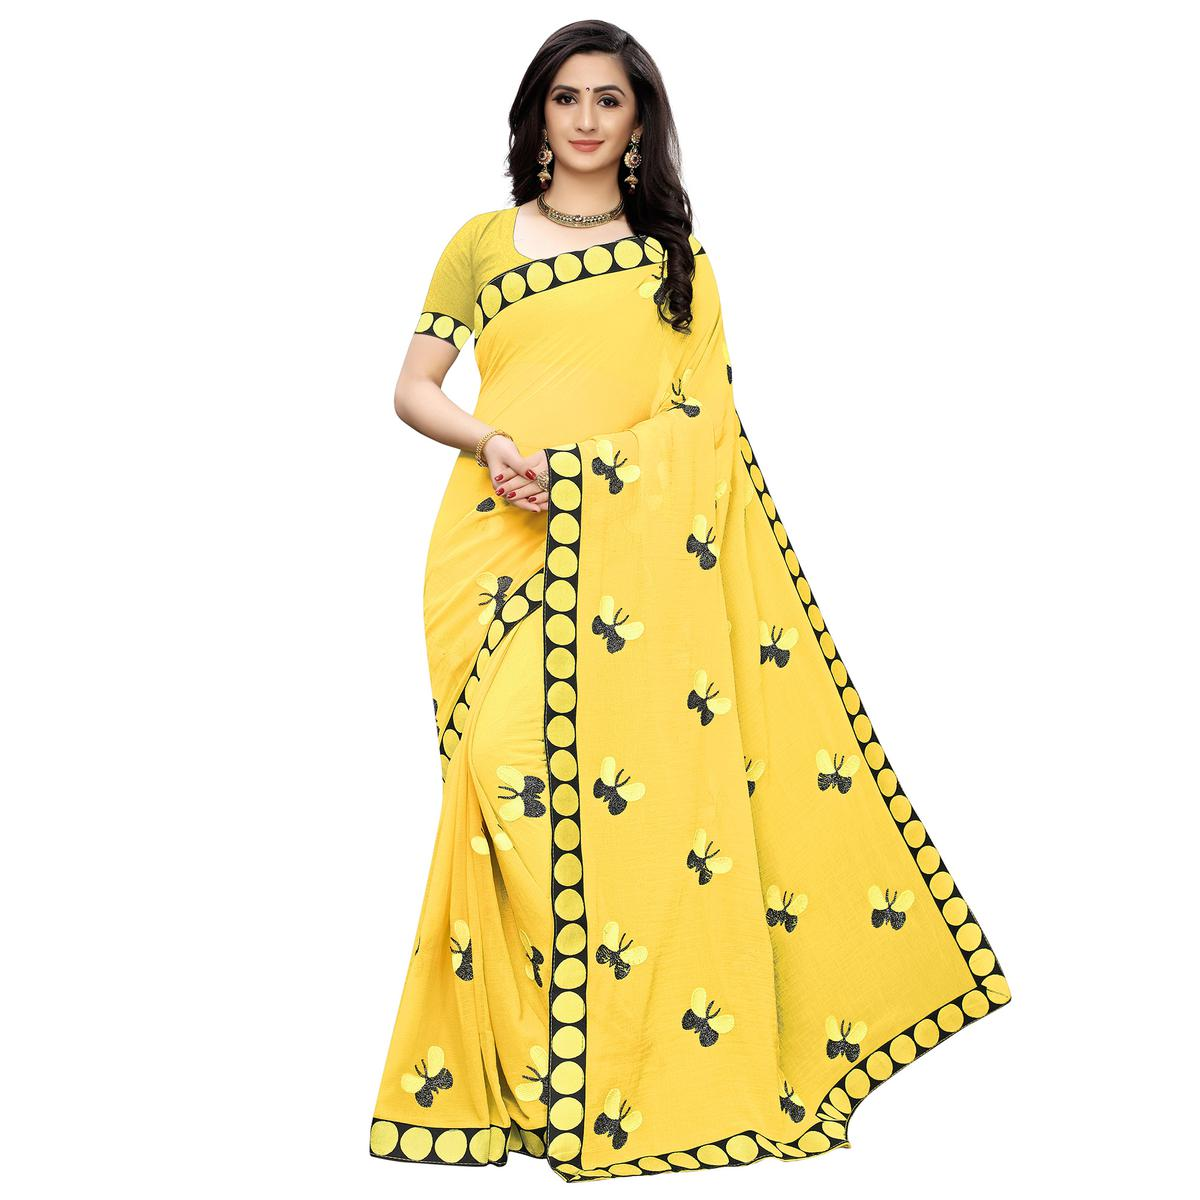 Attractive Yellow Colored Party Wear Embroidered Georgette Saree